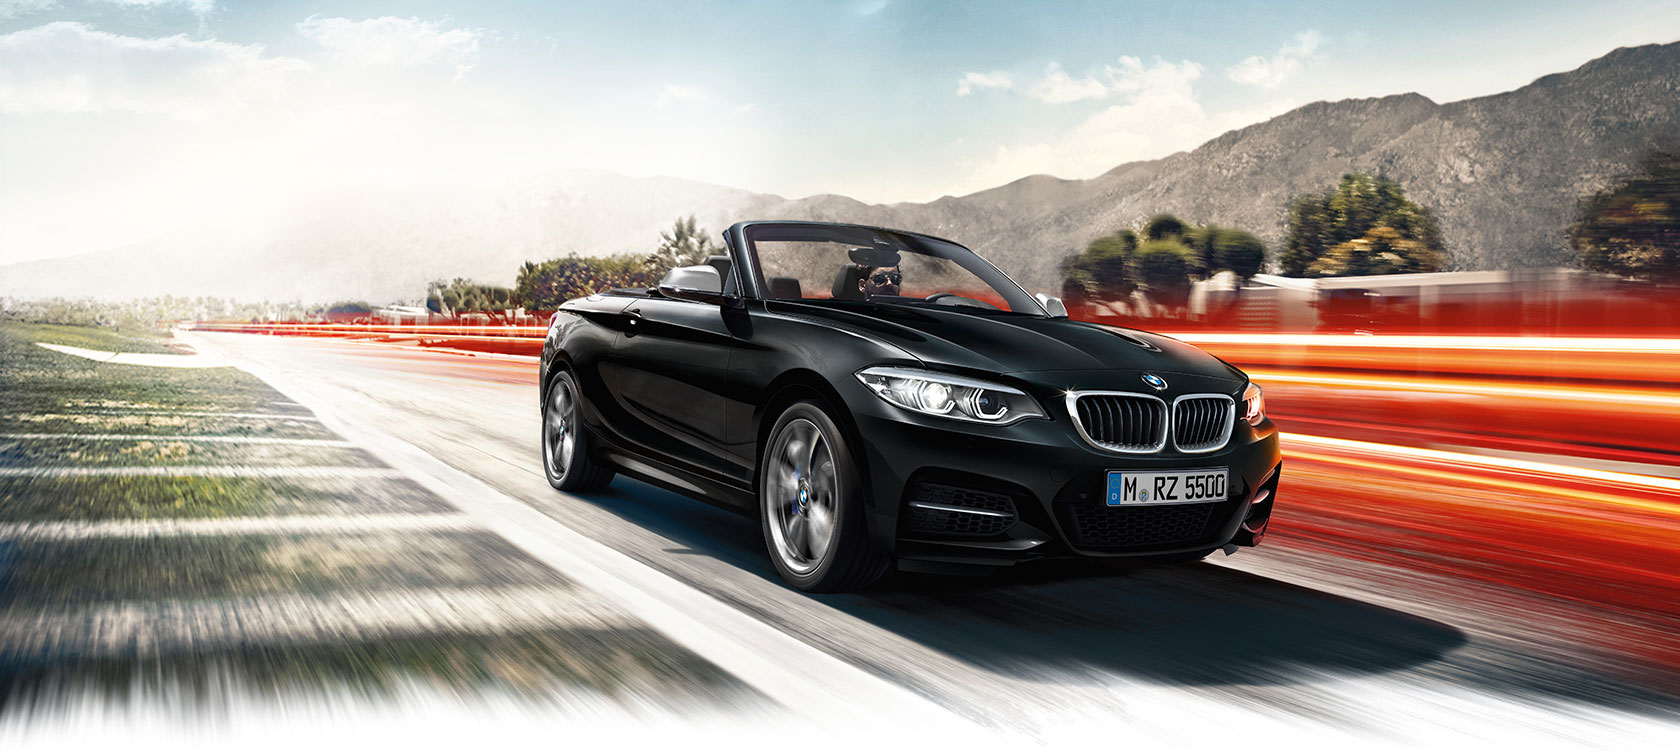 New BMW 2-Series Convertible black car: driving on hills